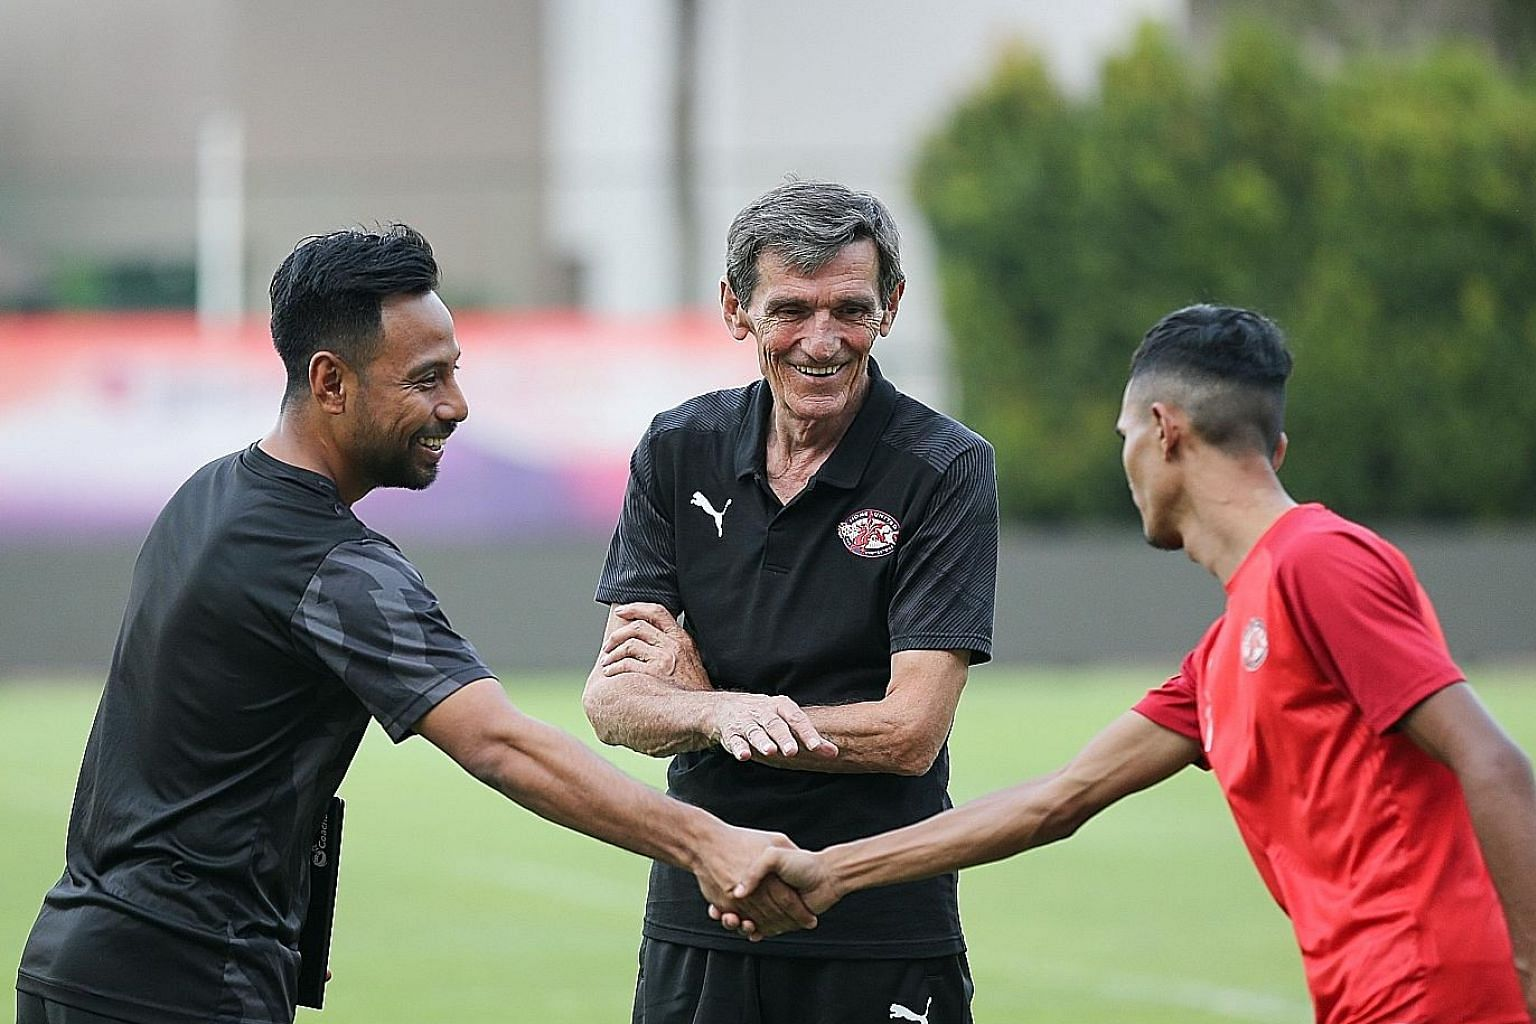 Former Home United coach Raddy Avramovic pictured with assistant coach Noh Rahman (far left) and Home player Aqhari Abdullah during a training session in July. He stepped down on Sunday to return to Serbia for cancer treatment. ST FILE PHOTO